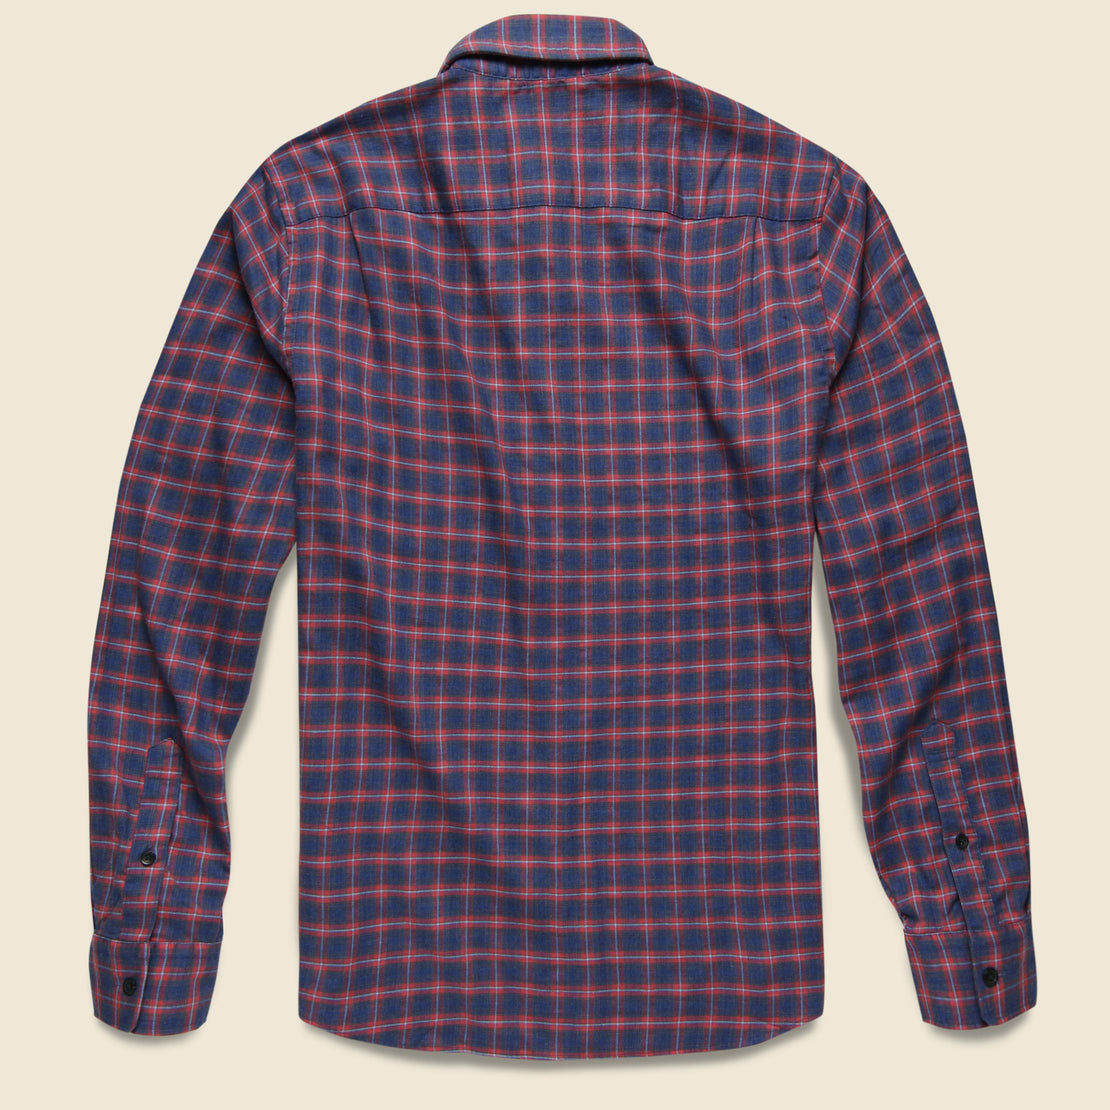 Everyday Shirt - Festive Check